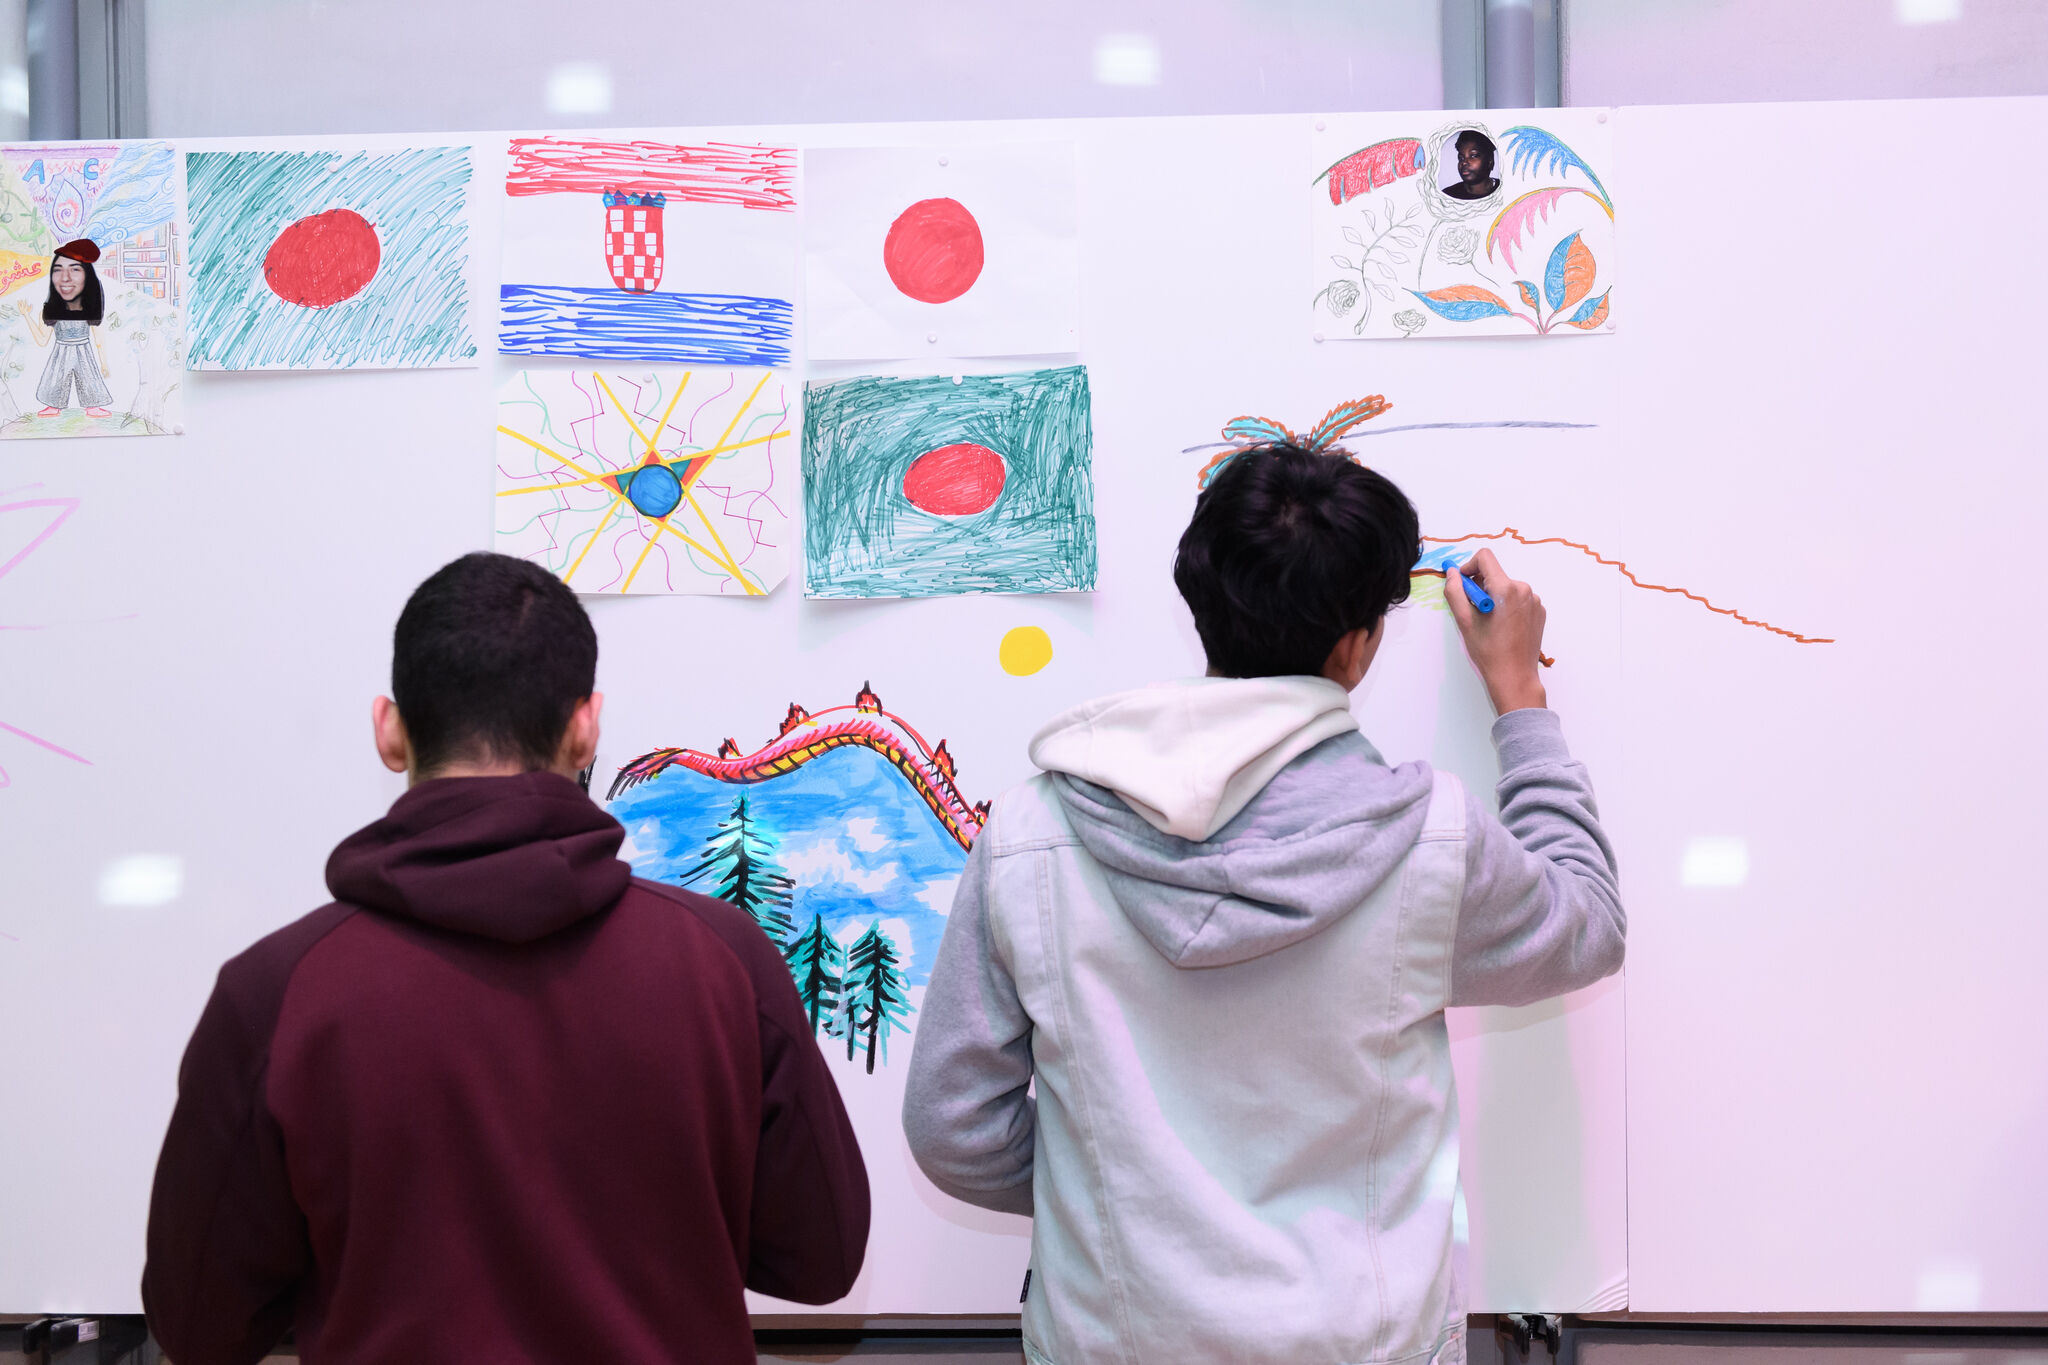 Two teenage people with short hair and hoodies are drawing with markers on a white board. The white board also has various drawings pinned to it.